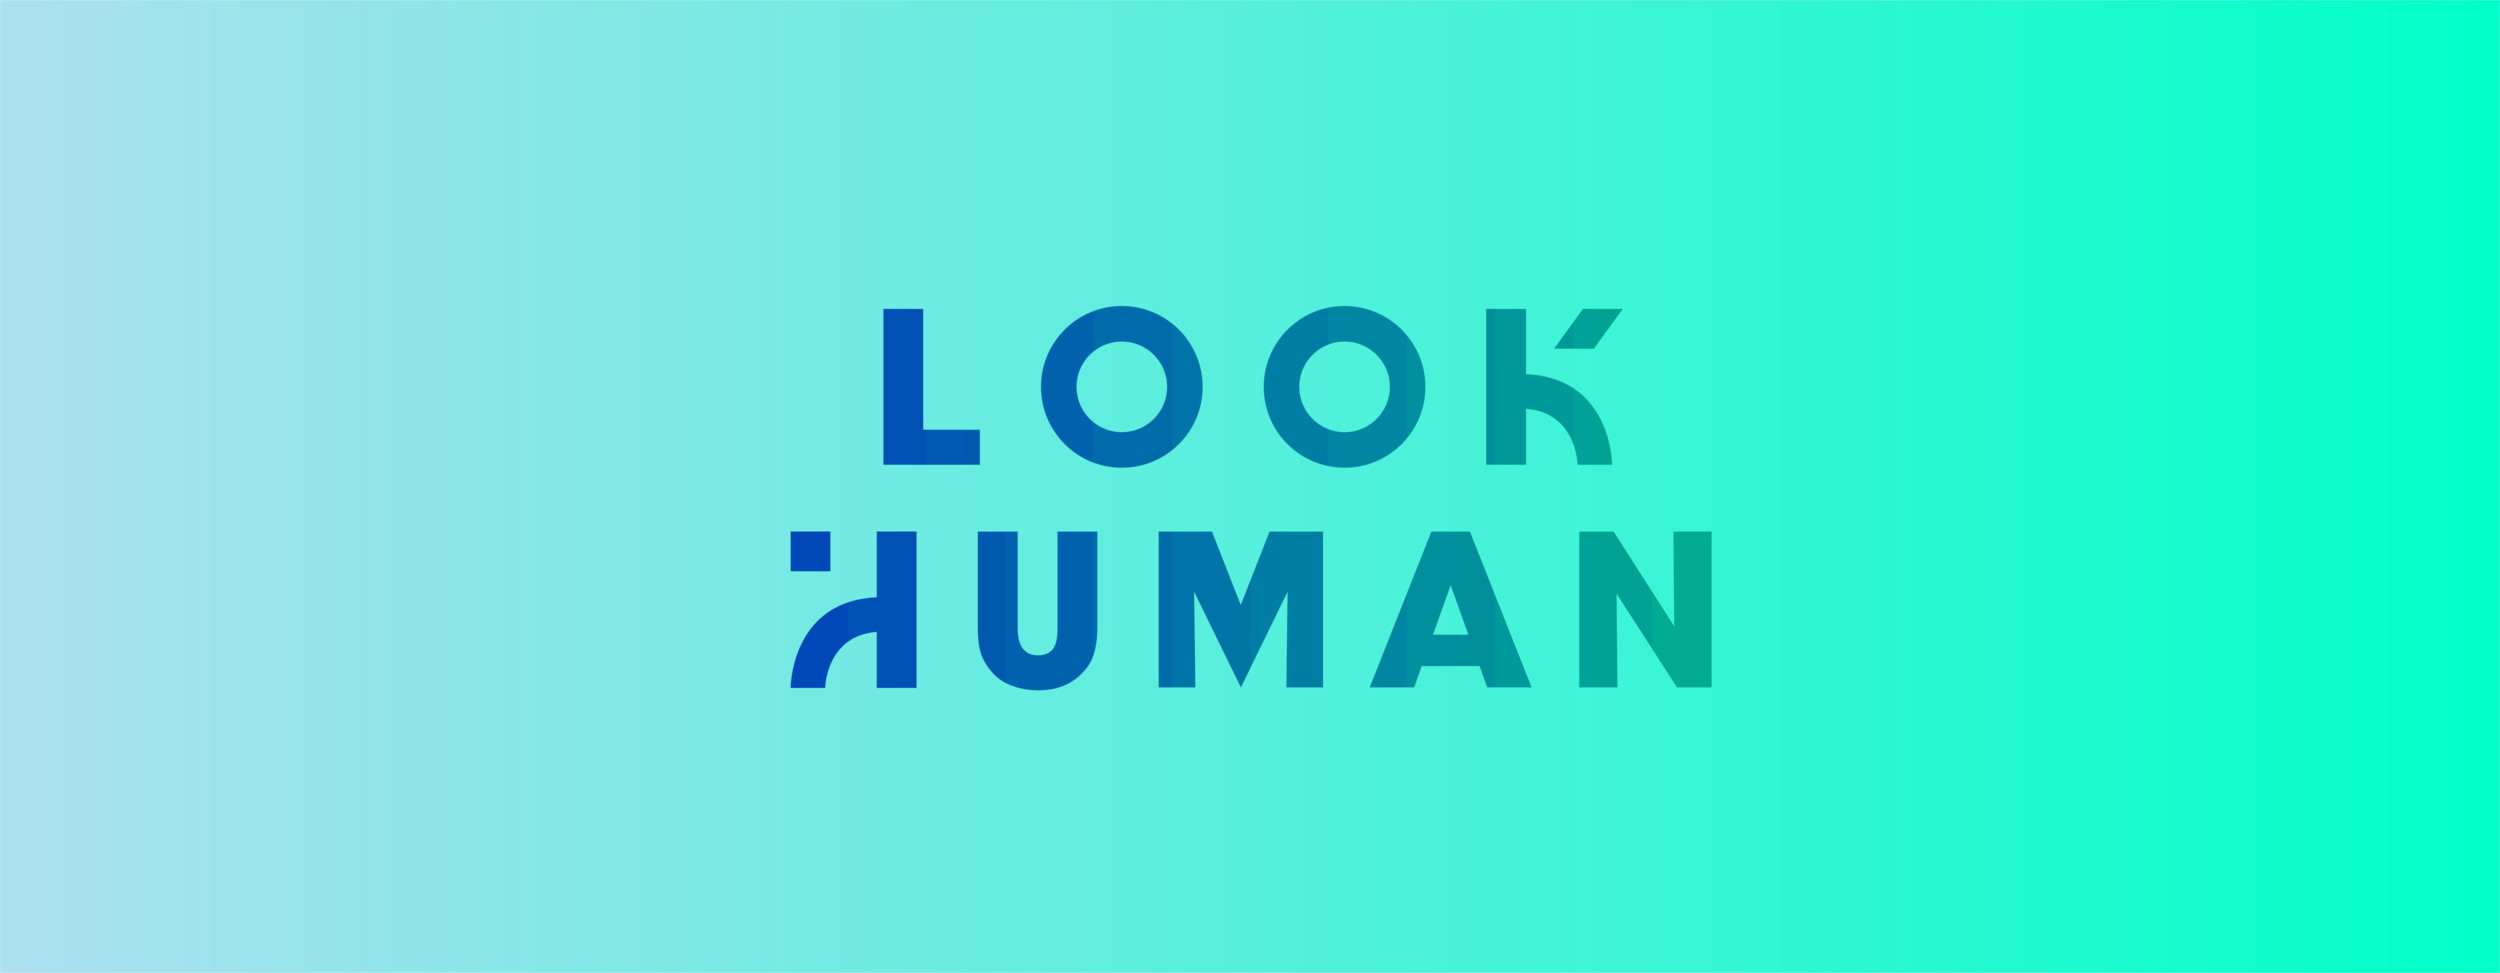 lookhuman-logo1.png